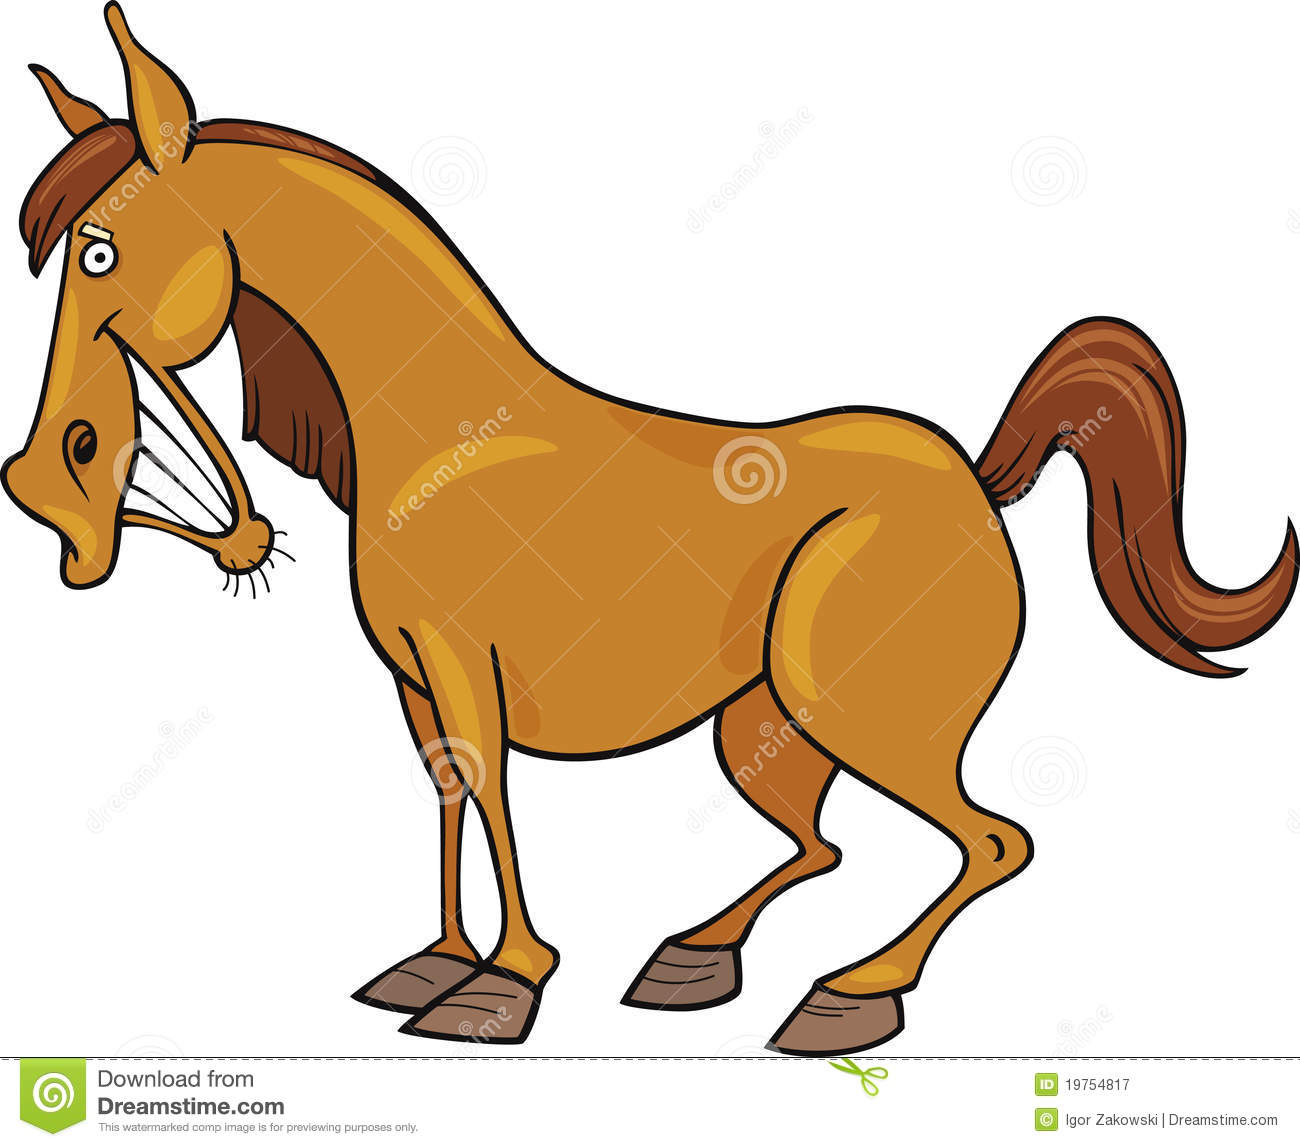 Cartoon horse royalty free stock photography image 19754817 - Clipart cheval ...